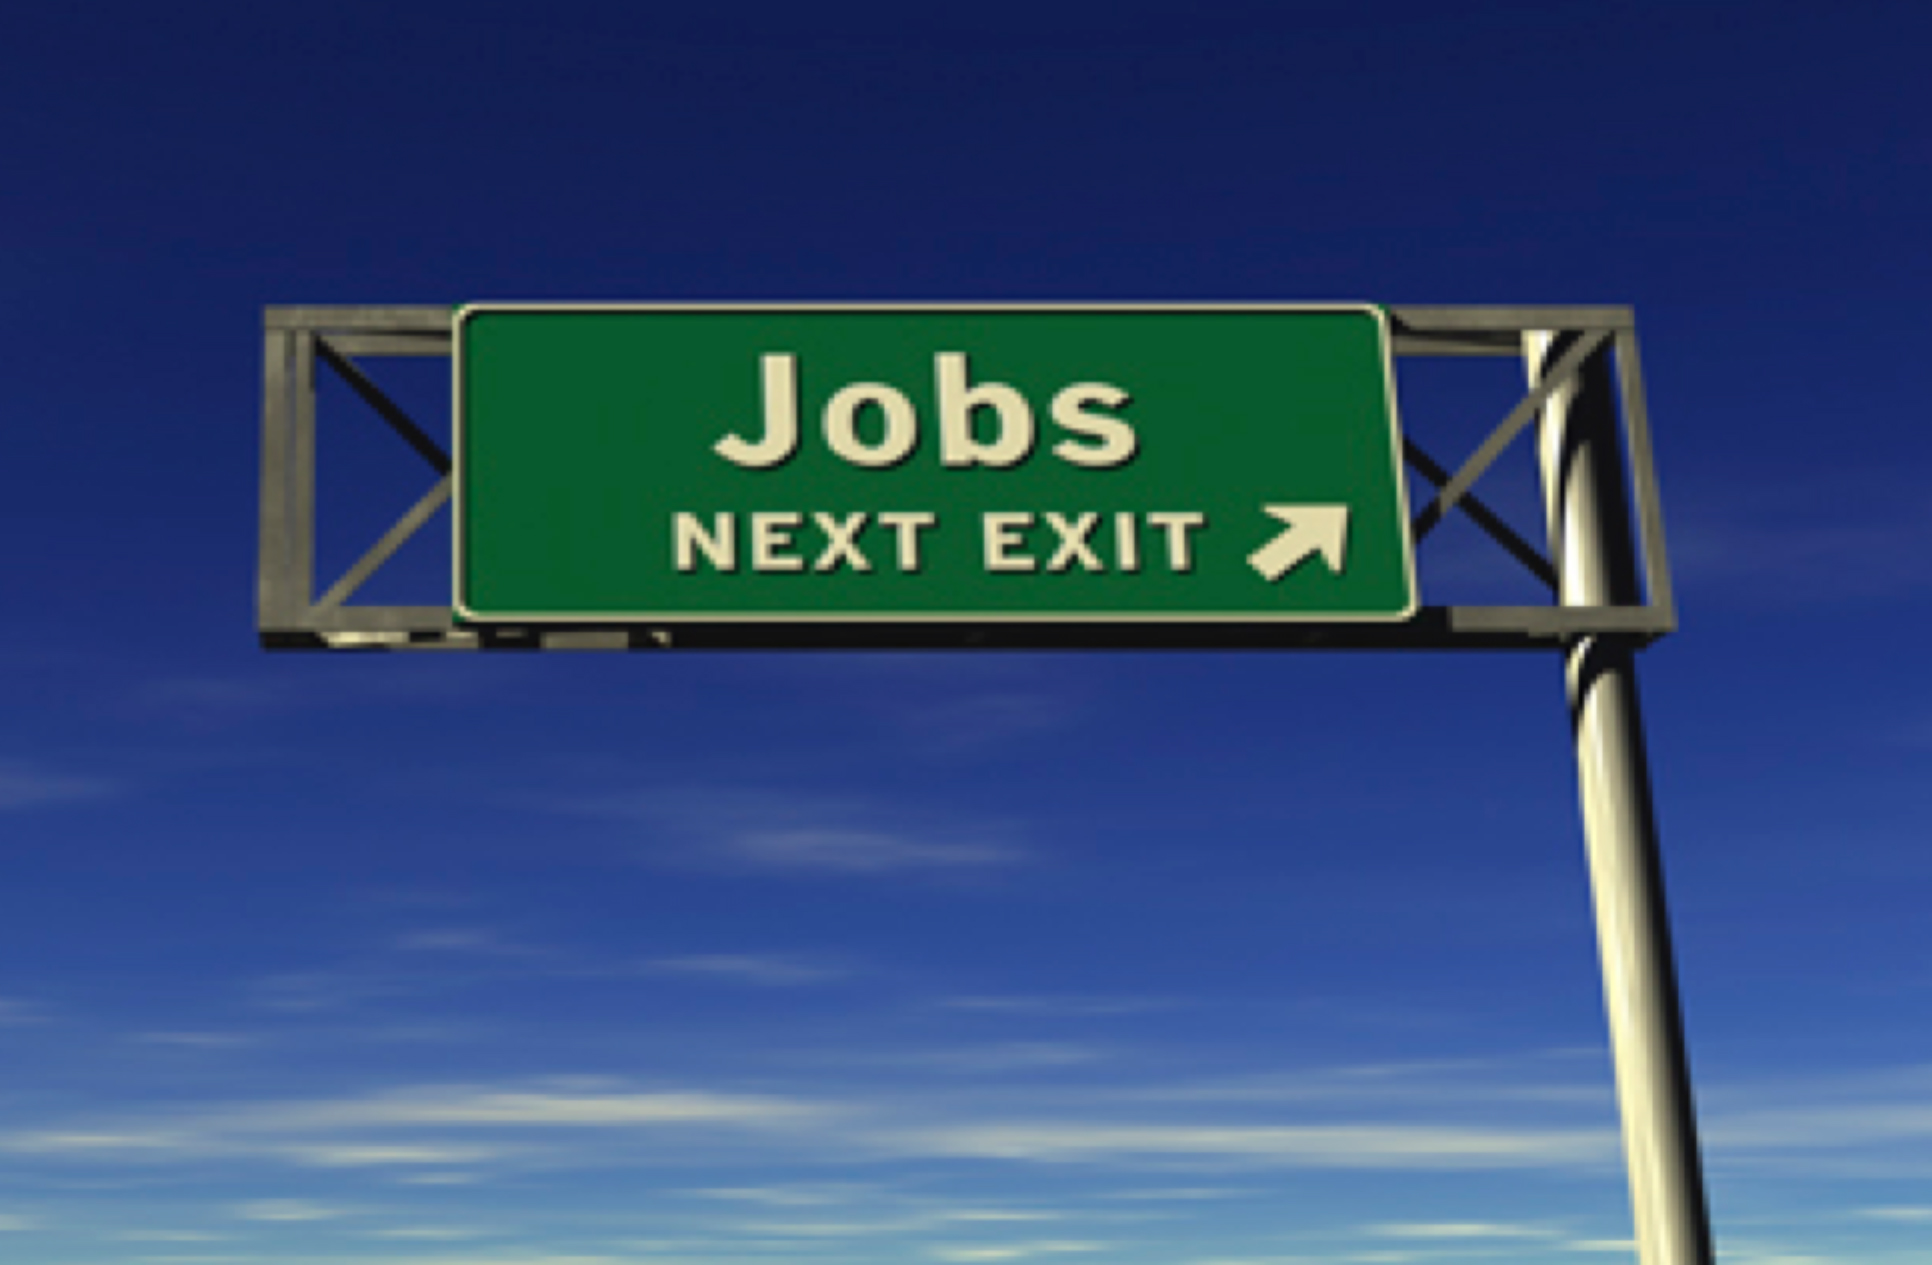 Jobs Next Exit graphic.jpg